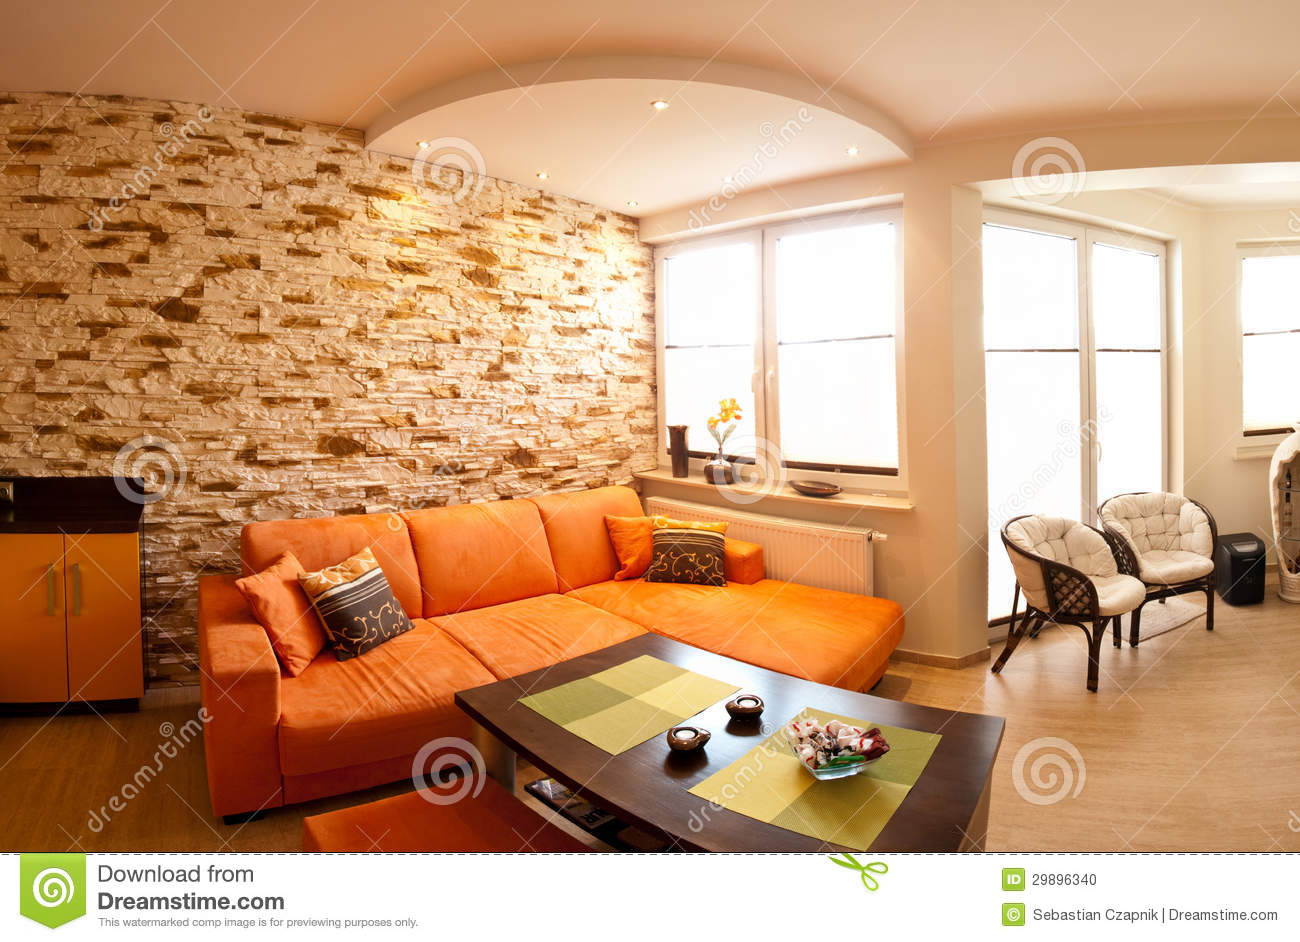 Orange Room Panorama Stock Photo - Image: 29896340